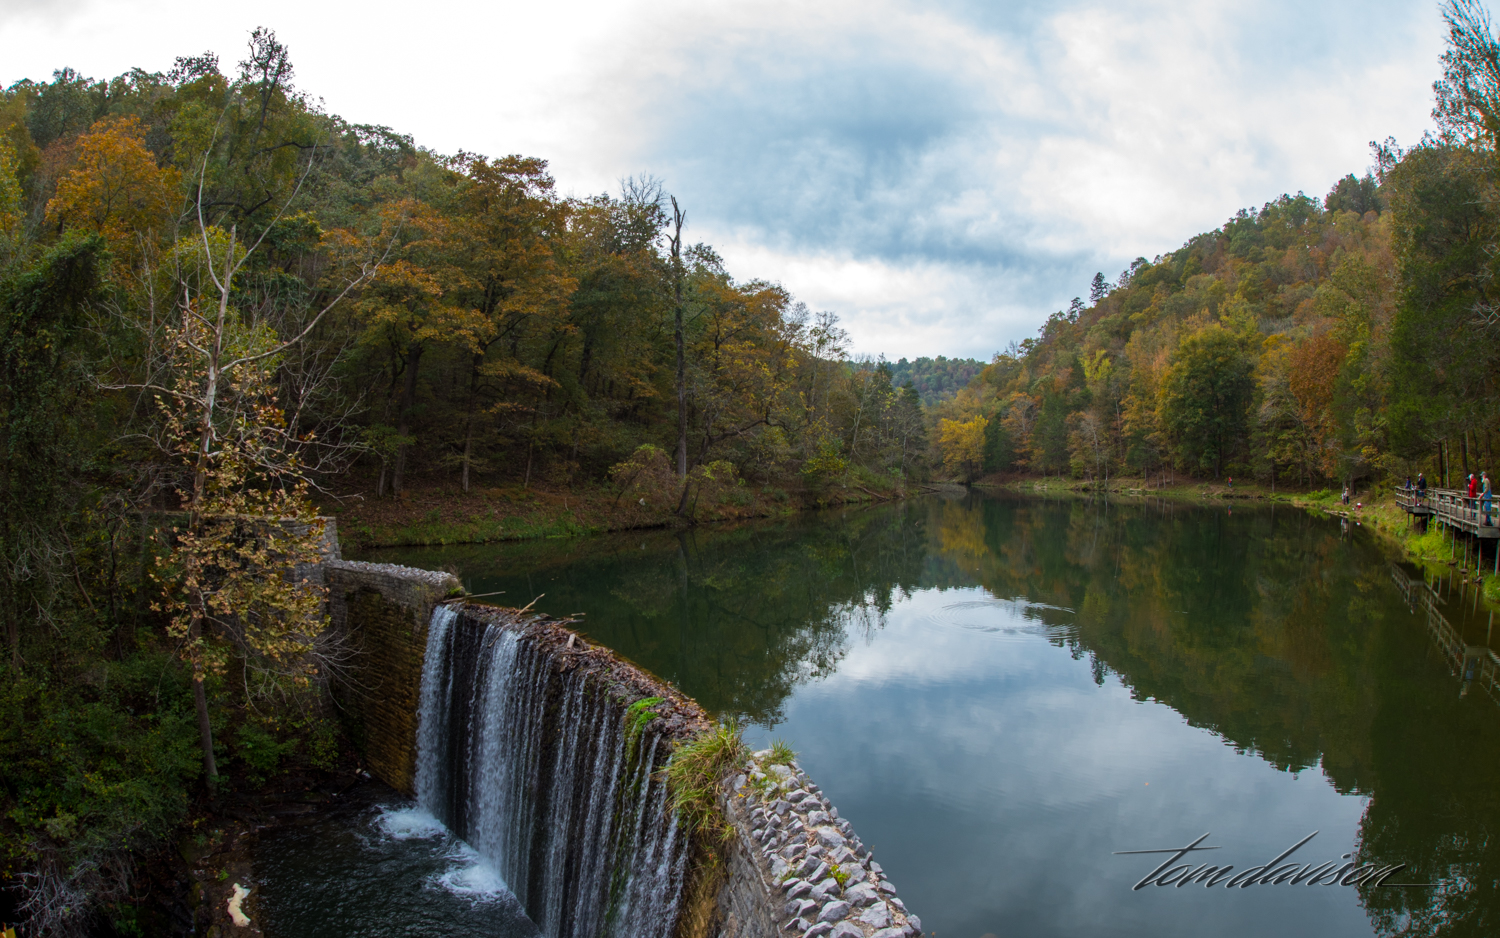 This dam is like many in the area. Made of stone and probably either rebuilt or raised in height by the CCC.